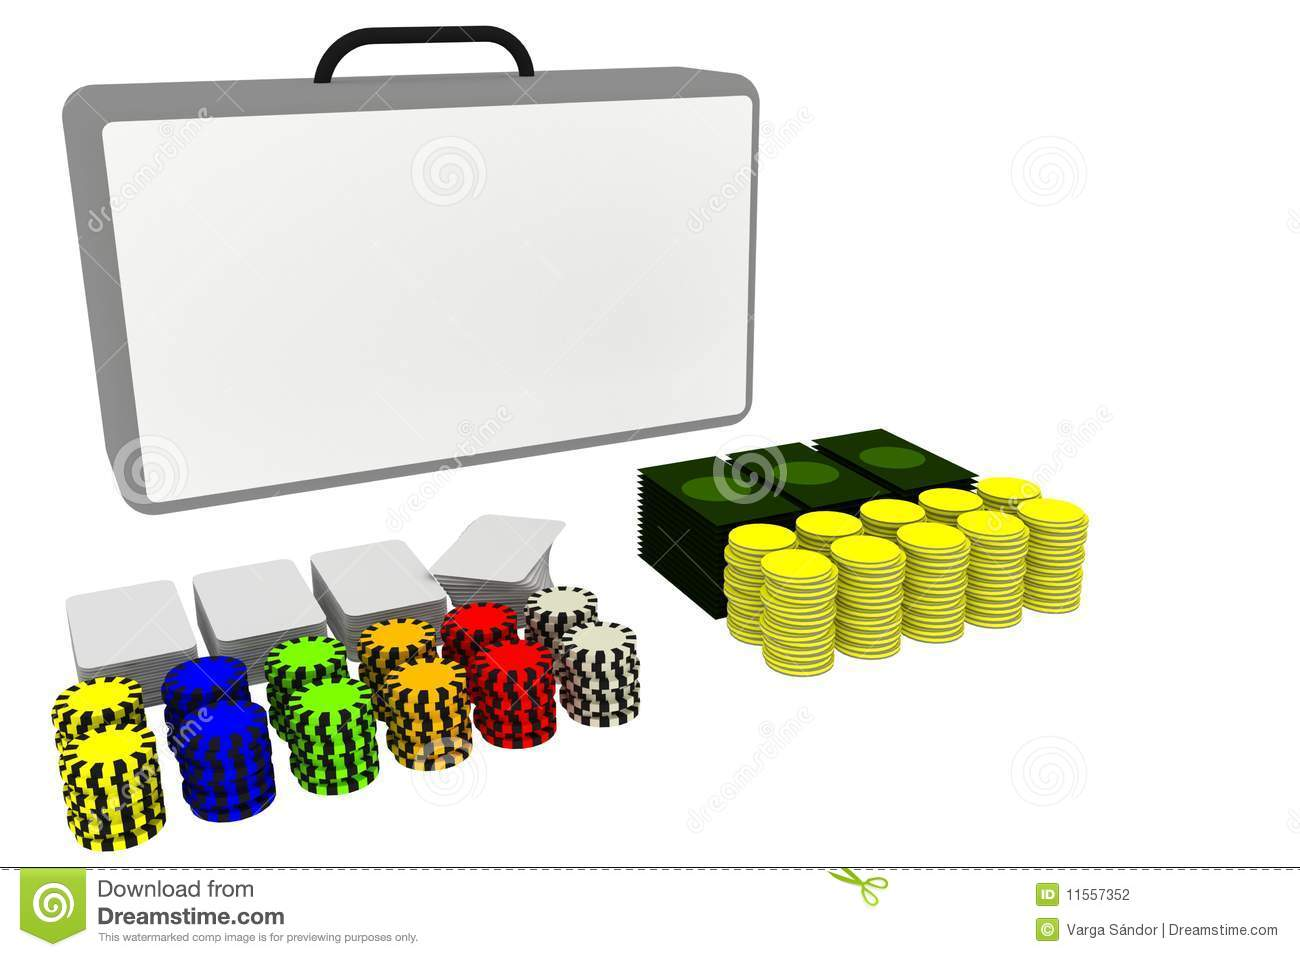 Casino poker photo booth props perfect for your Las Vegas